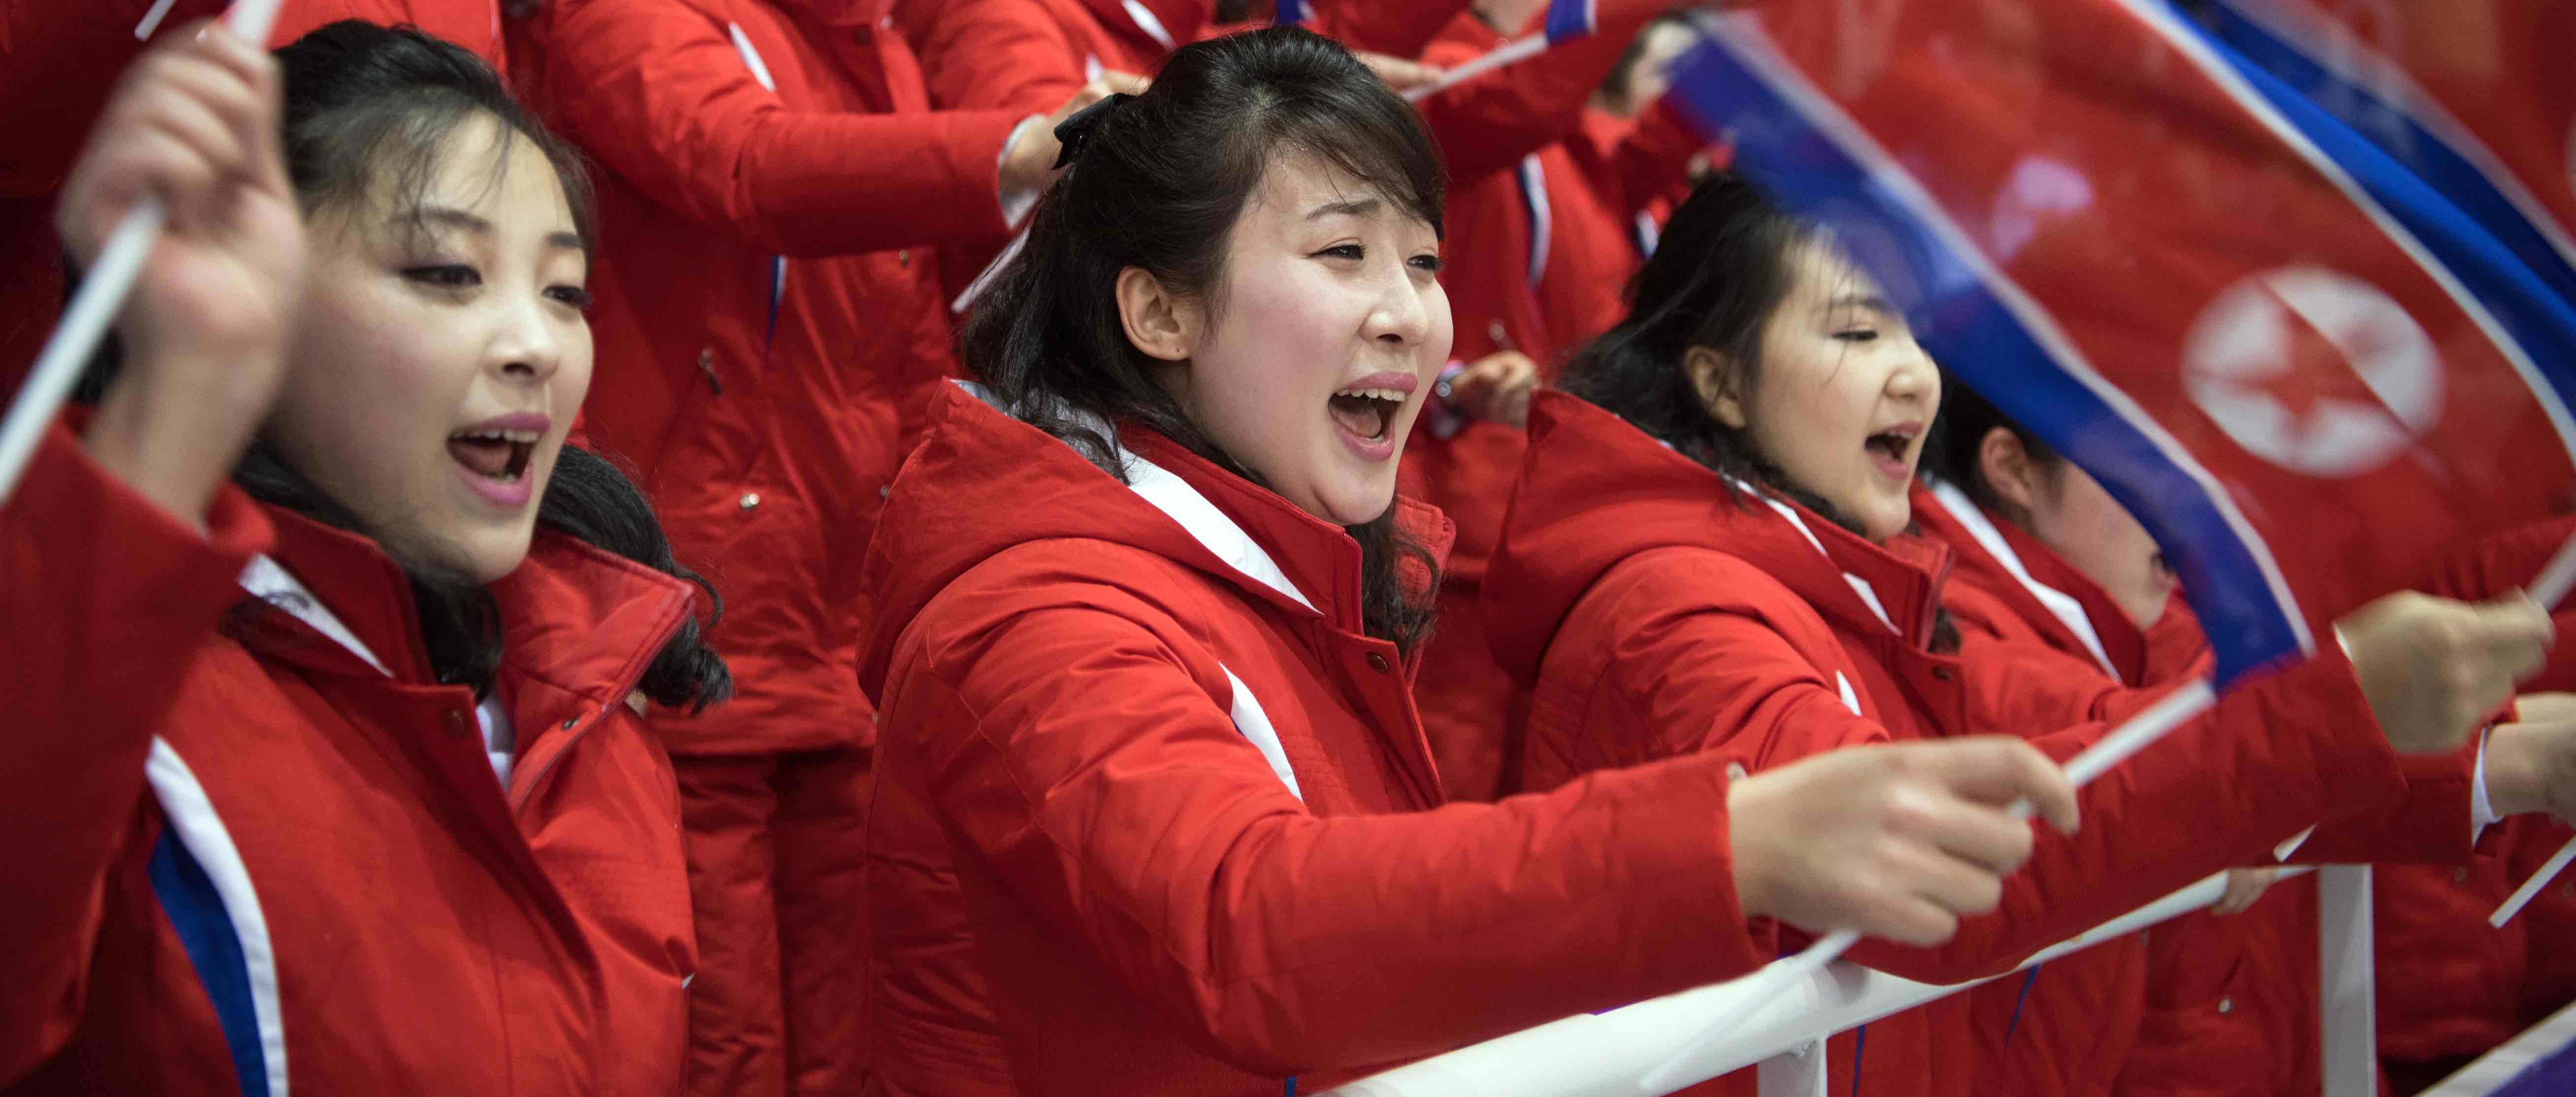 North Korean cheer squad in Gangneung Ice Arena during the Winter Olympics (Photo: Carl Court/Getty)